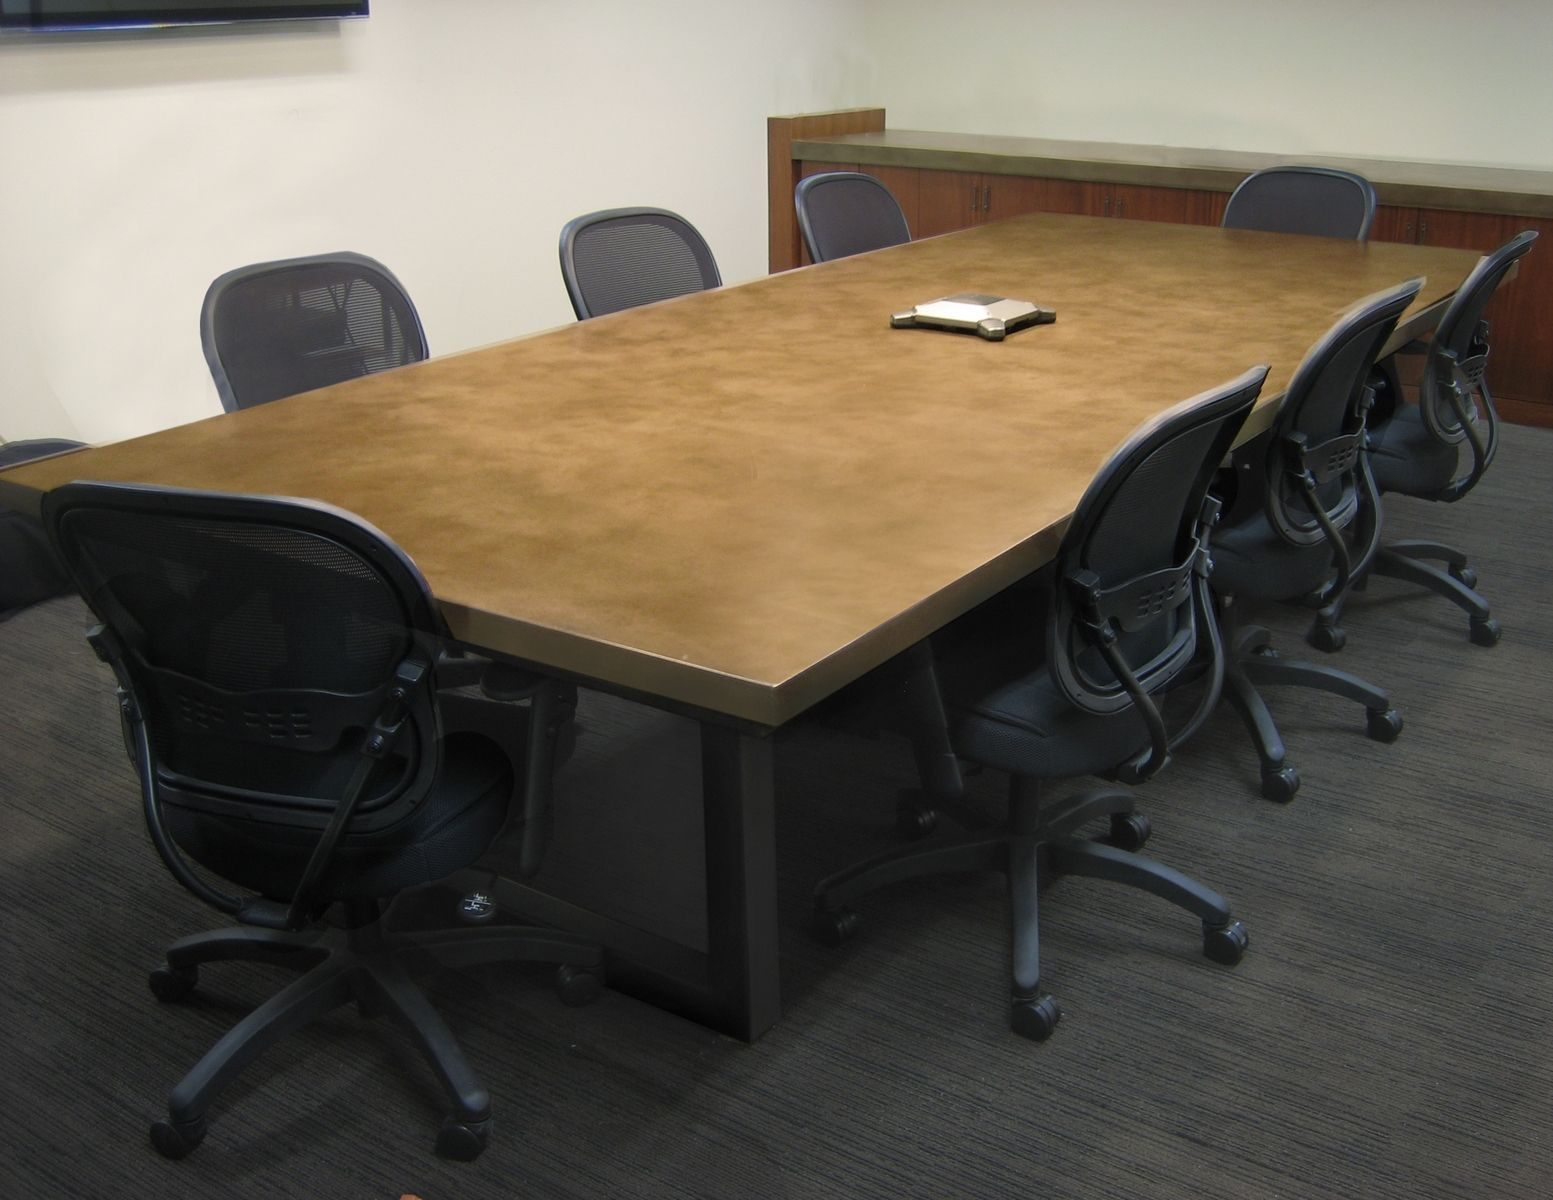 ce interiors atlanta room furniture by laminate classic new ft offered office used table light conference and tables maple products finish